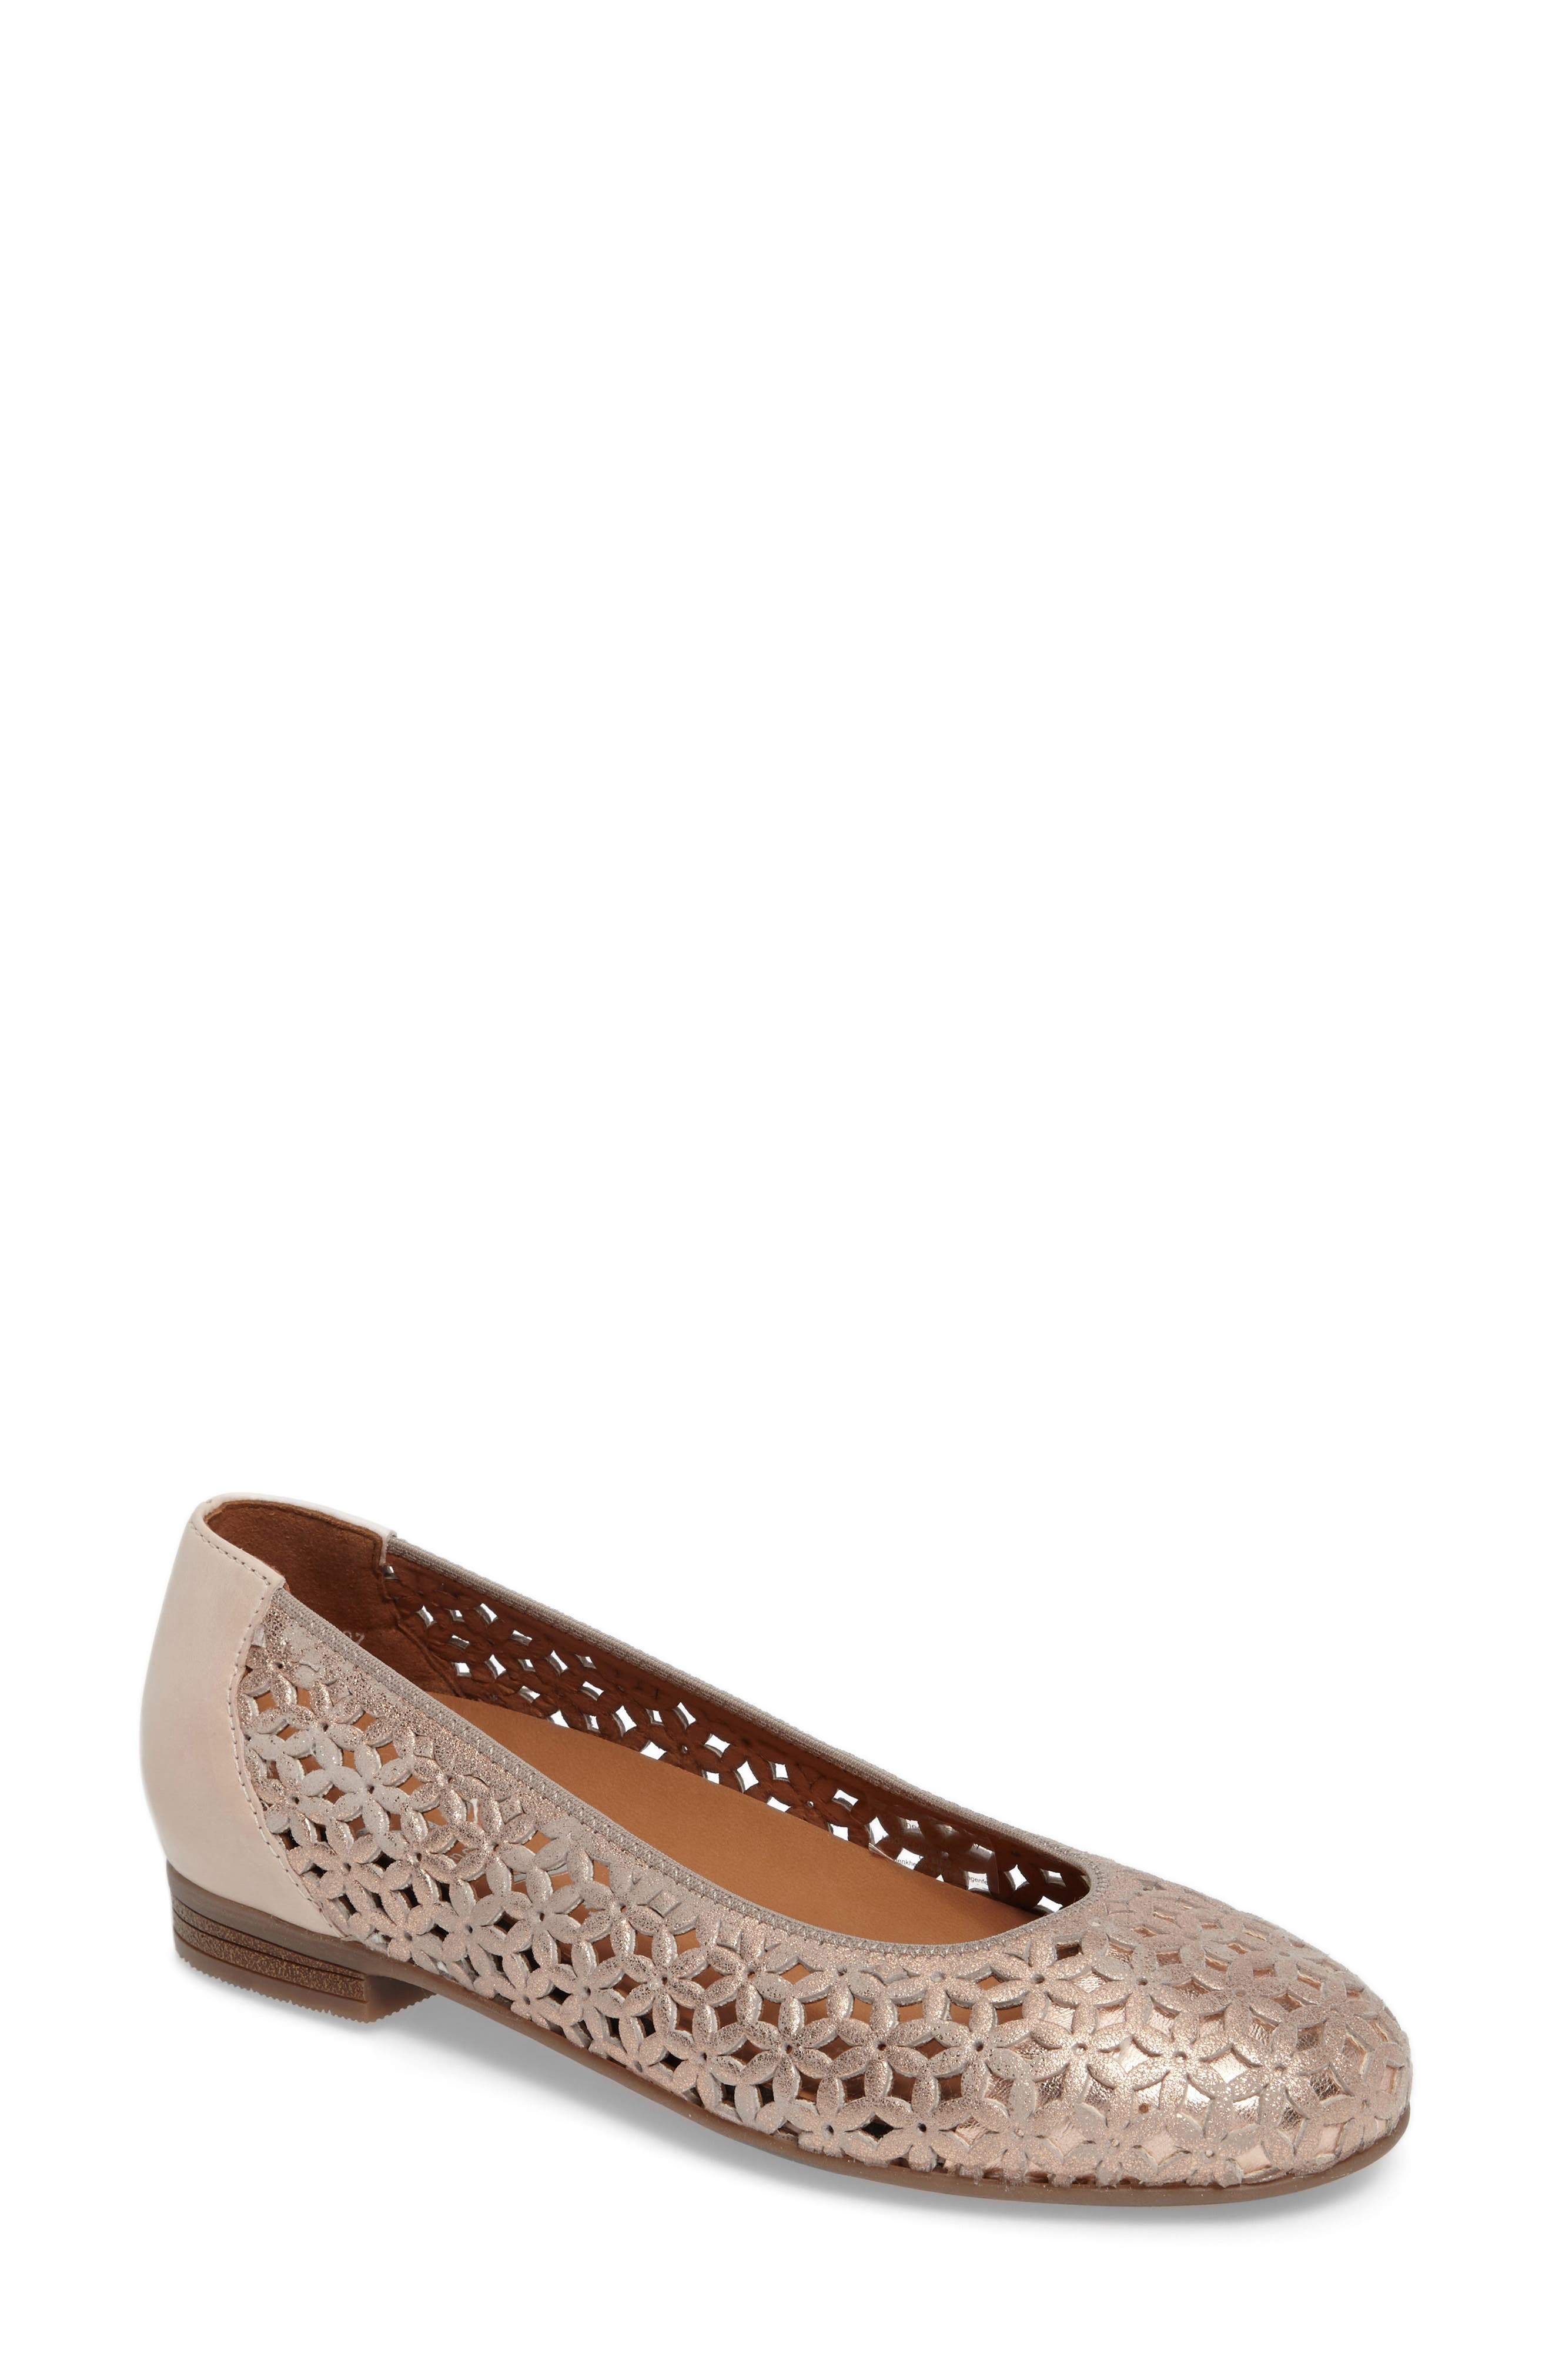 Stephanie Perforated Ballet Flat,                         Main,                         color, Rose Gold Leather